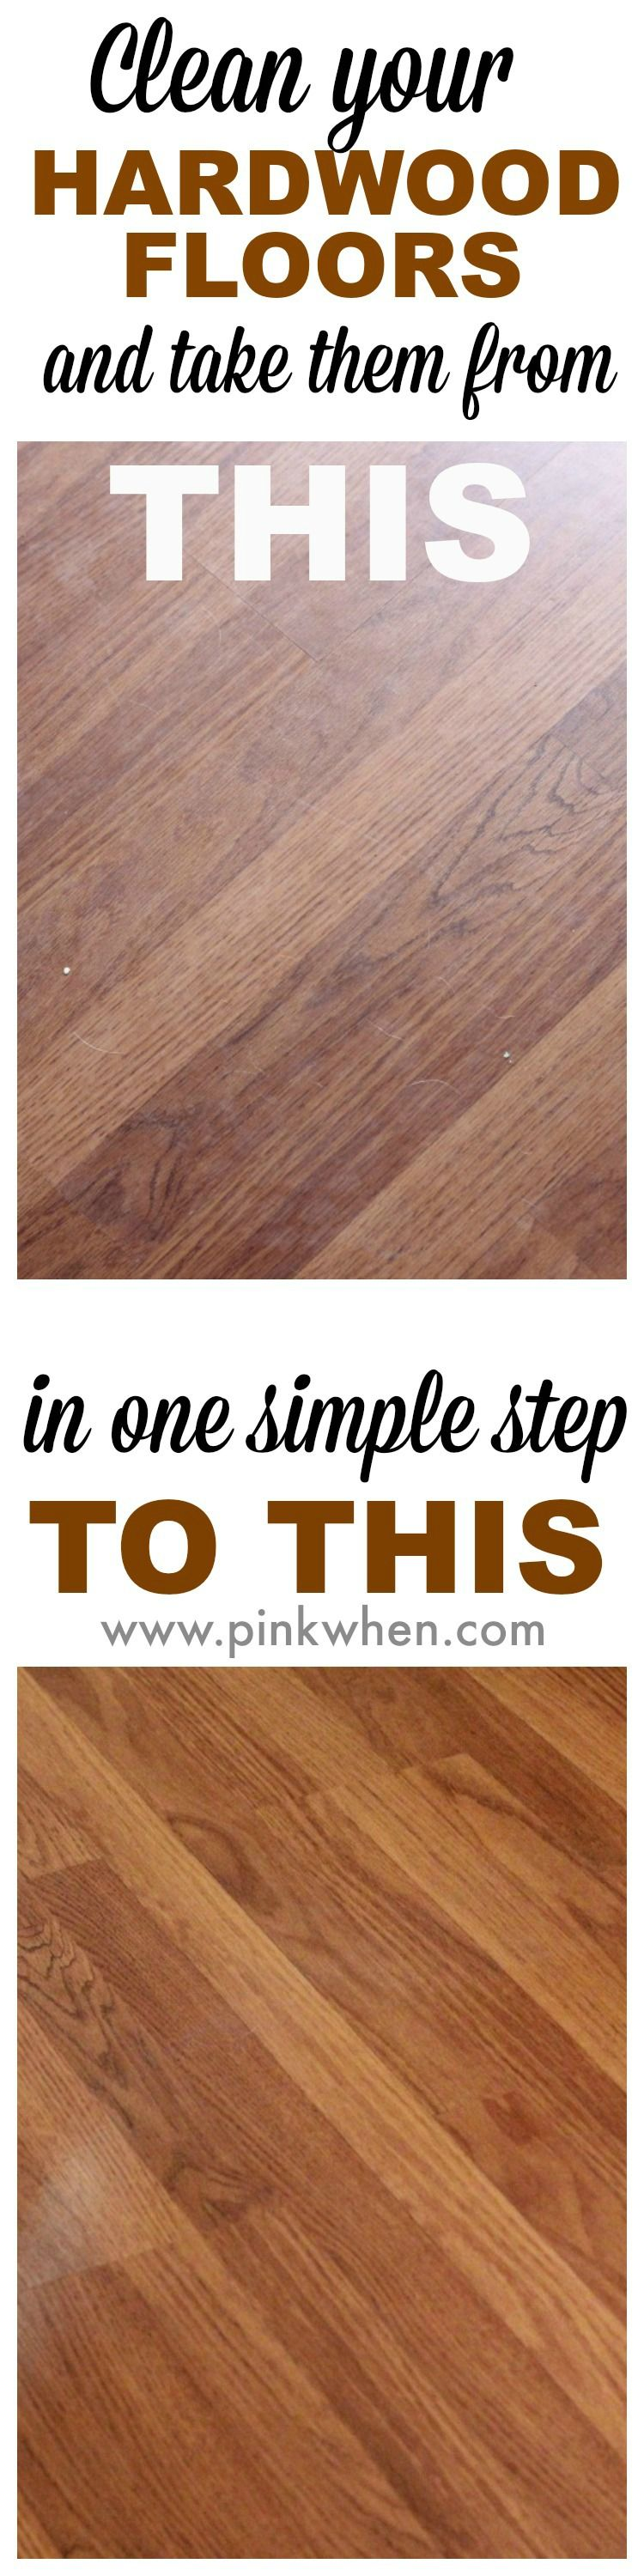 Take Care Of Your Hardwood Floor Cleaning To The Next Level And